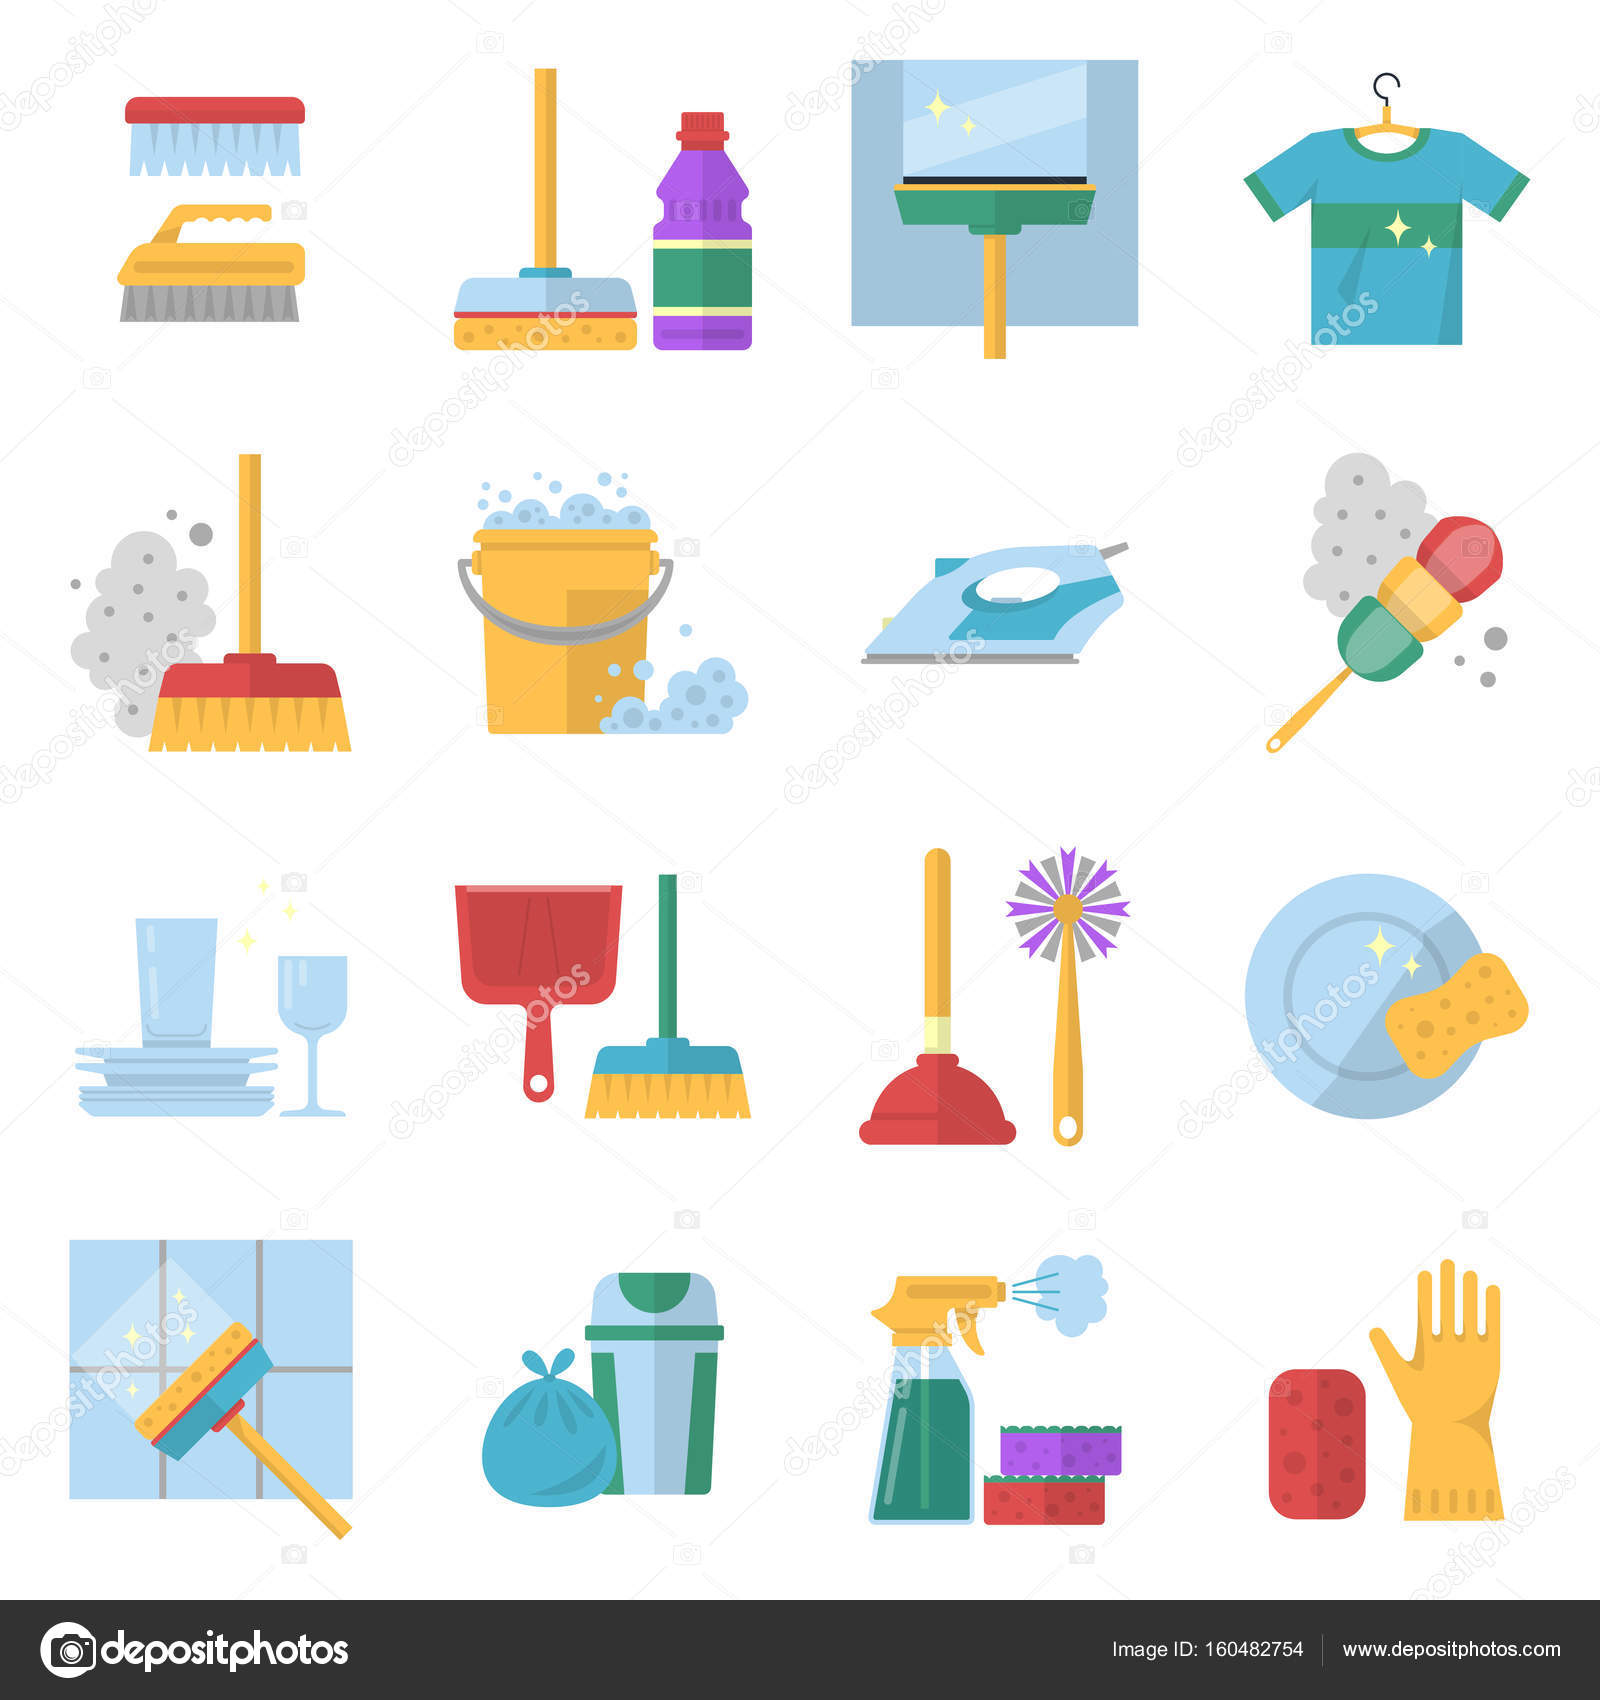 Cleaning service symbols different colored tools in cartoon style cleaning service symbols different colored tools in cartoon style brush and soap stock biocorpaavc